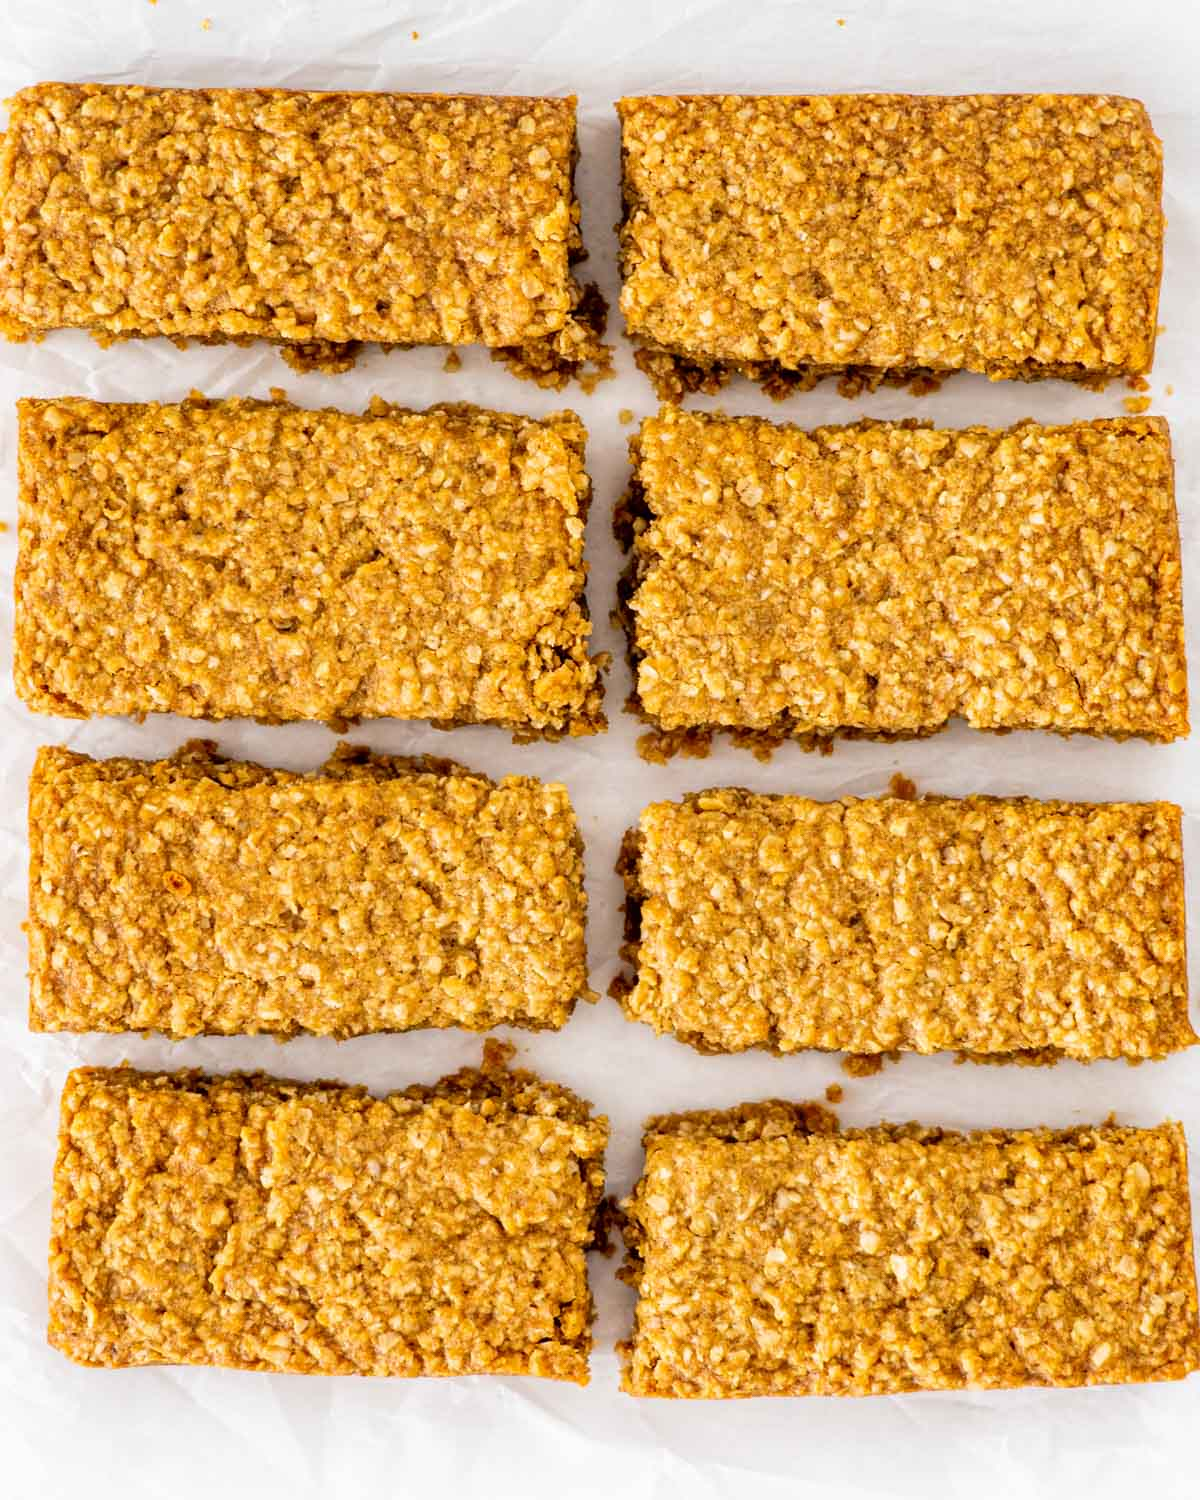 cut up bars of oatcakes on parchment paper.